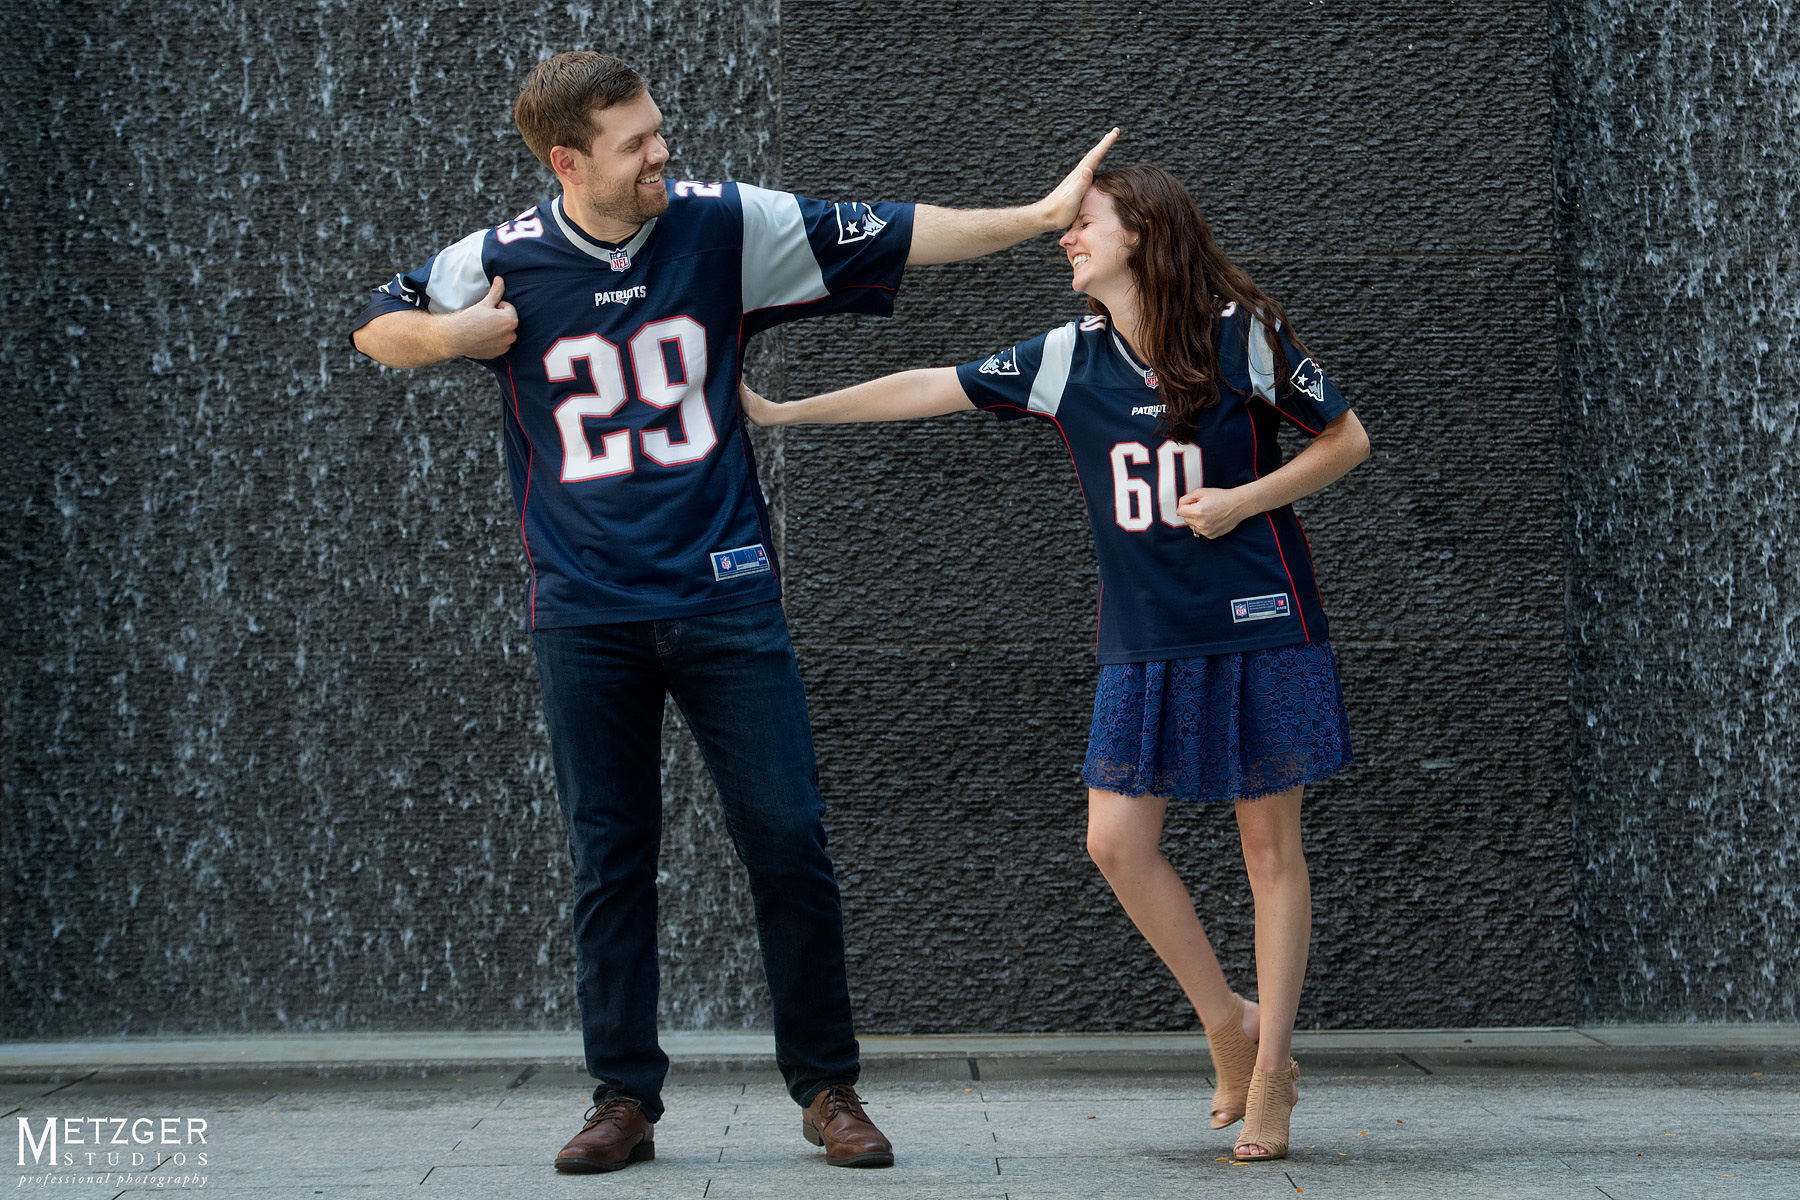 engagment_photography_patriots-Edit